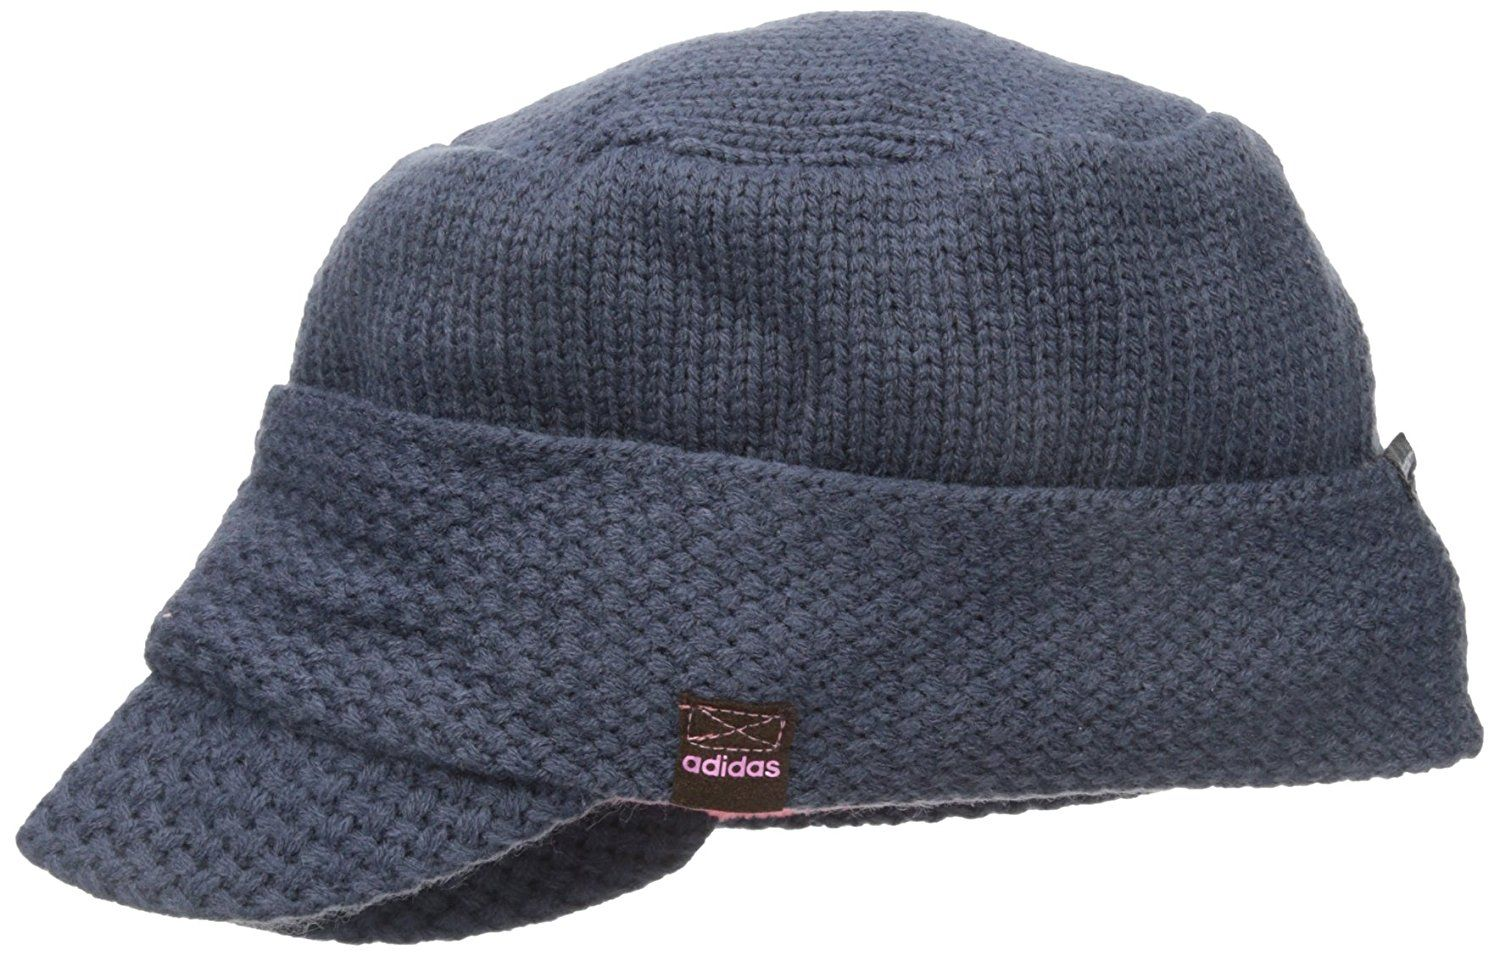 8f018b92151f5 Climawarm technology on this womens lynx military golf beanie hat by Adidas  helps to provide warmth and comfort during cold weather conditions!